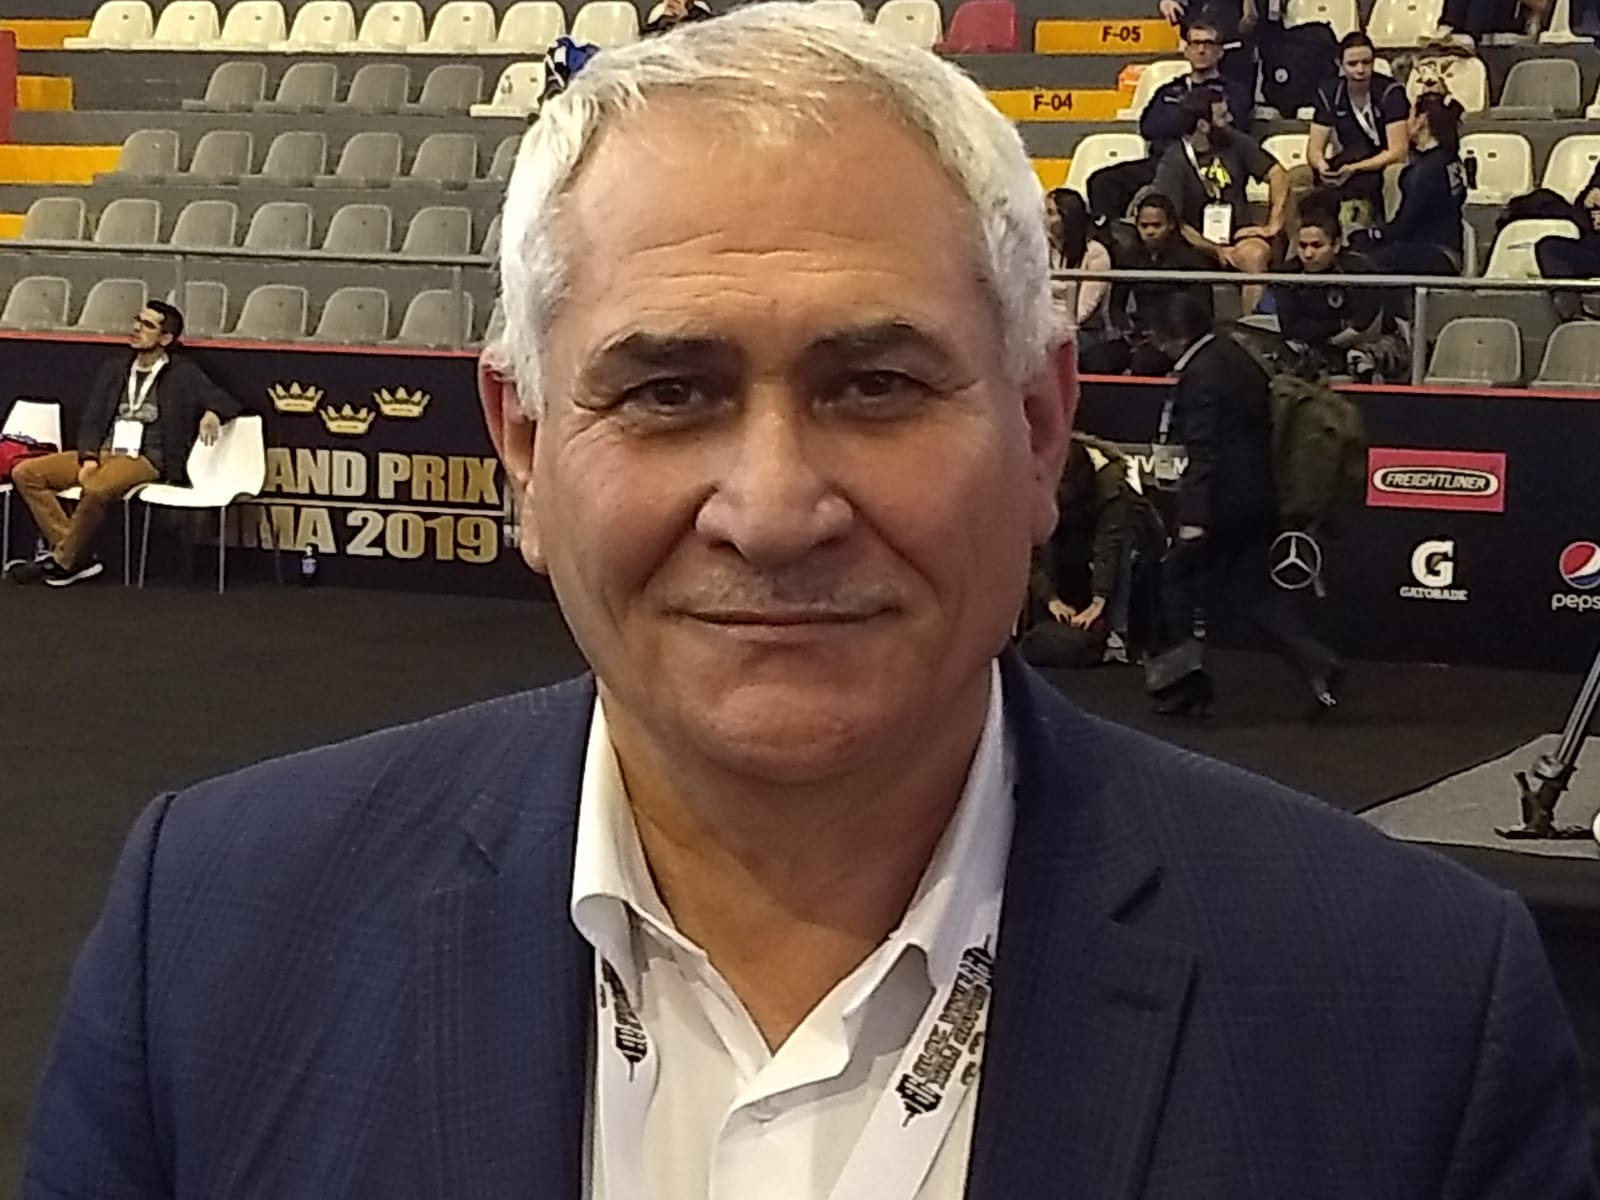 International Weightlifting Federation secretary general Mohamed Jaloud, because he is from Iraq, may not be eligible to stand at the next elections ©ITG